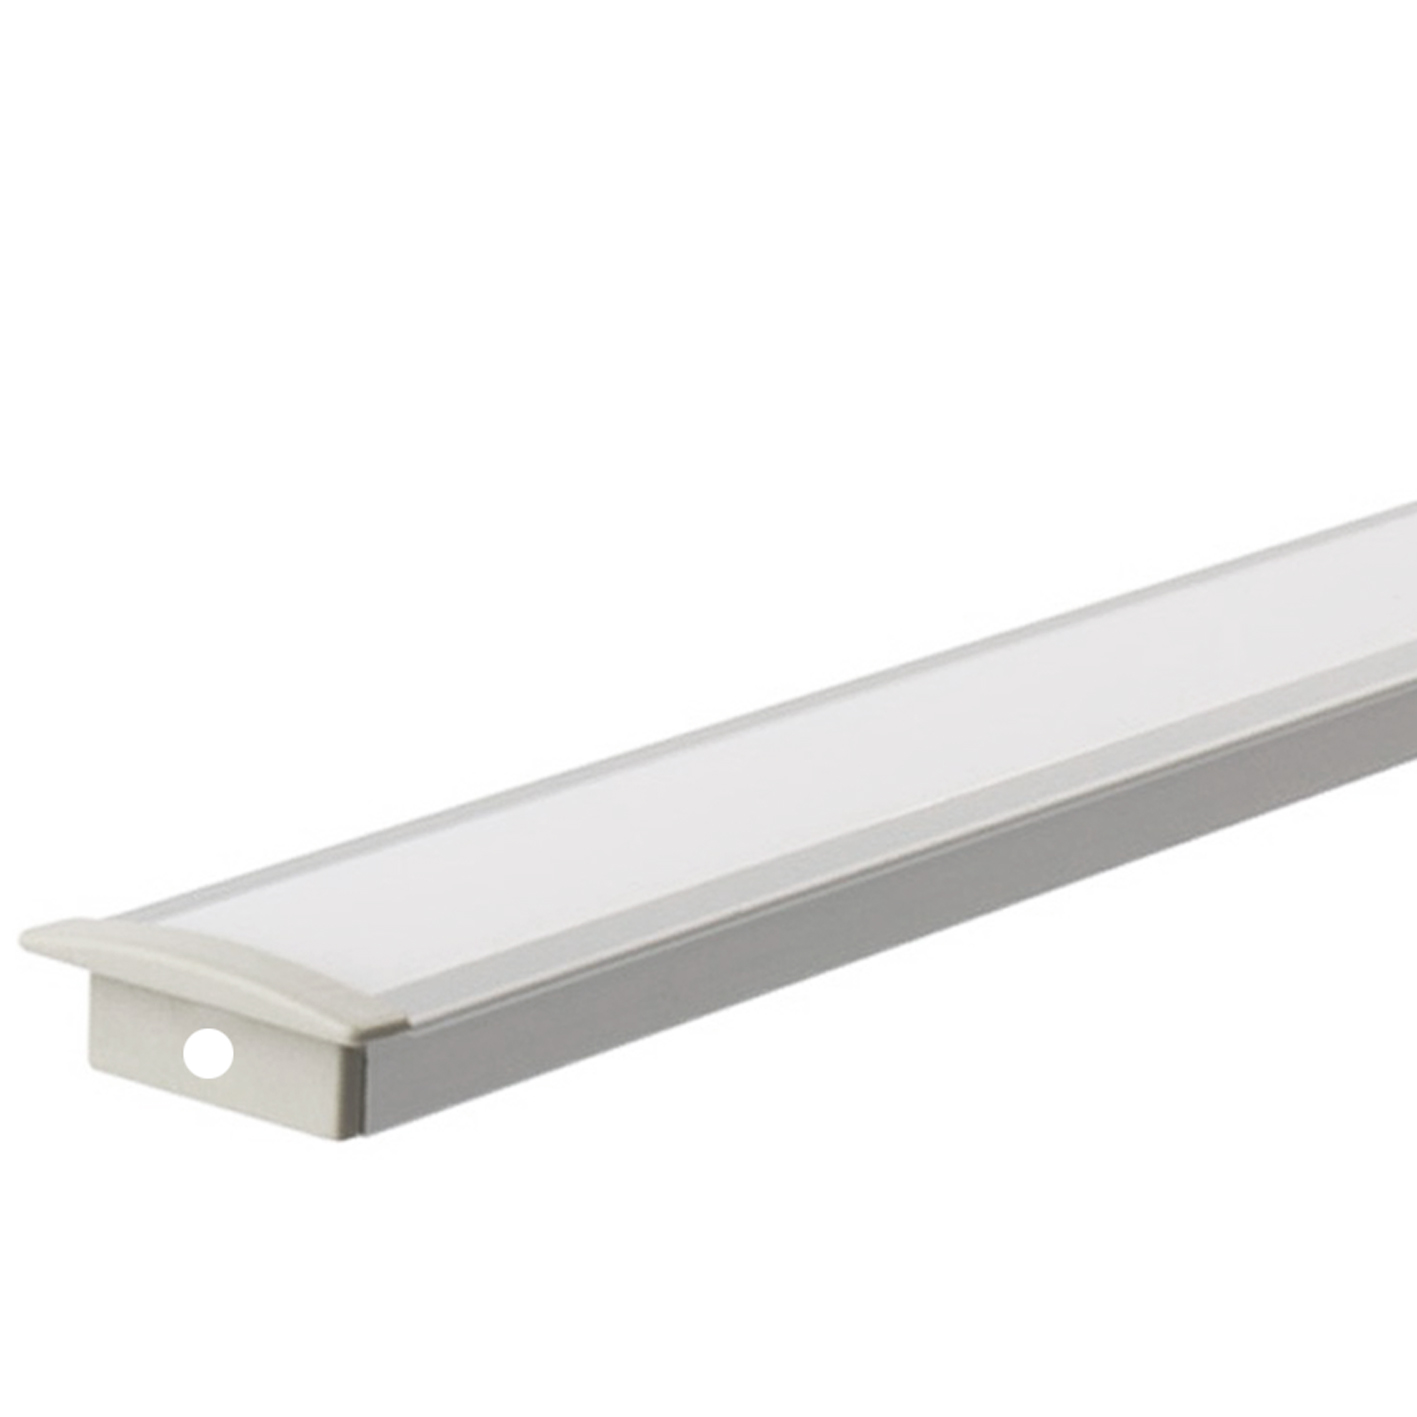 Profile for Strip led 2m BAR recessed Aluminum Matte Cover MIN 5 PCS